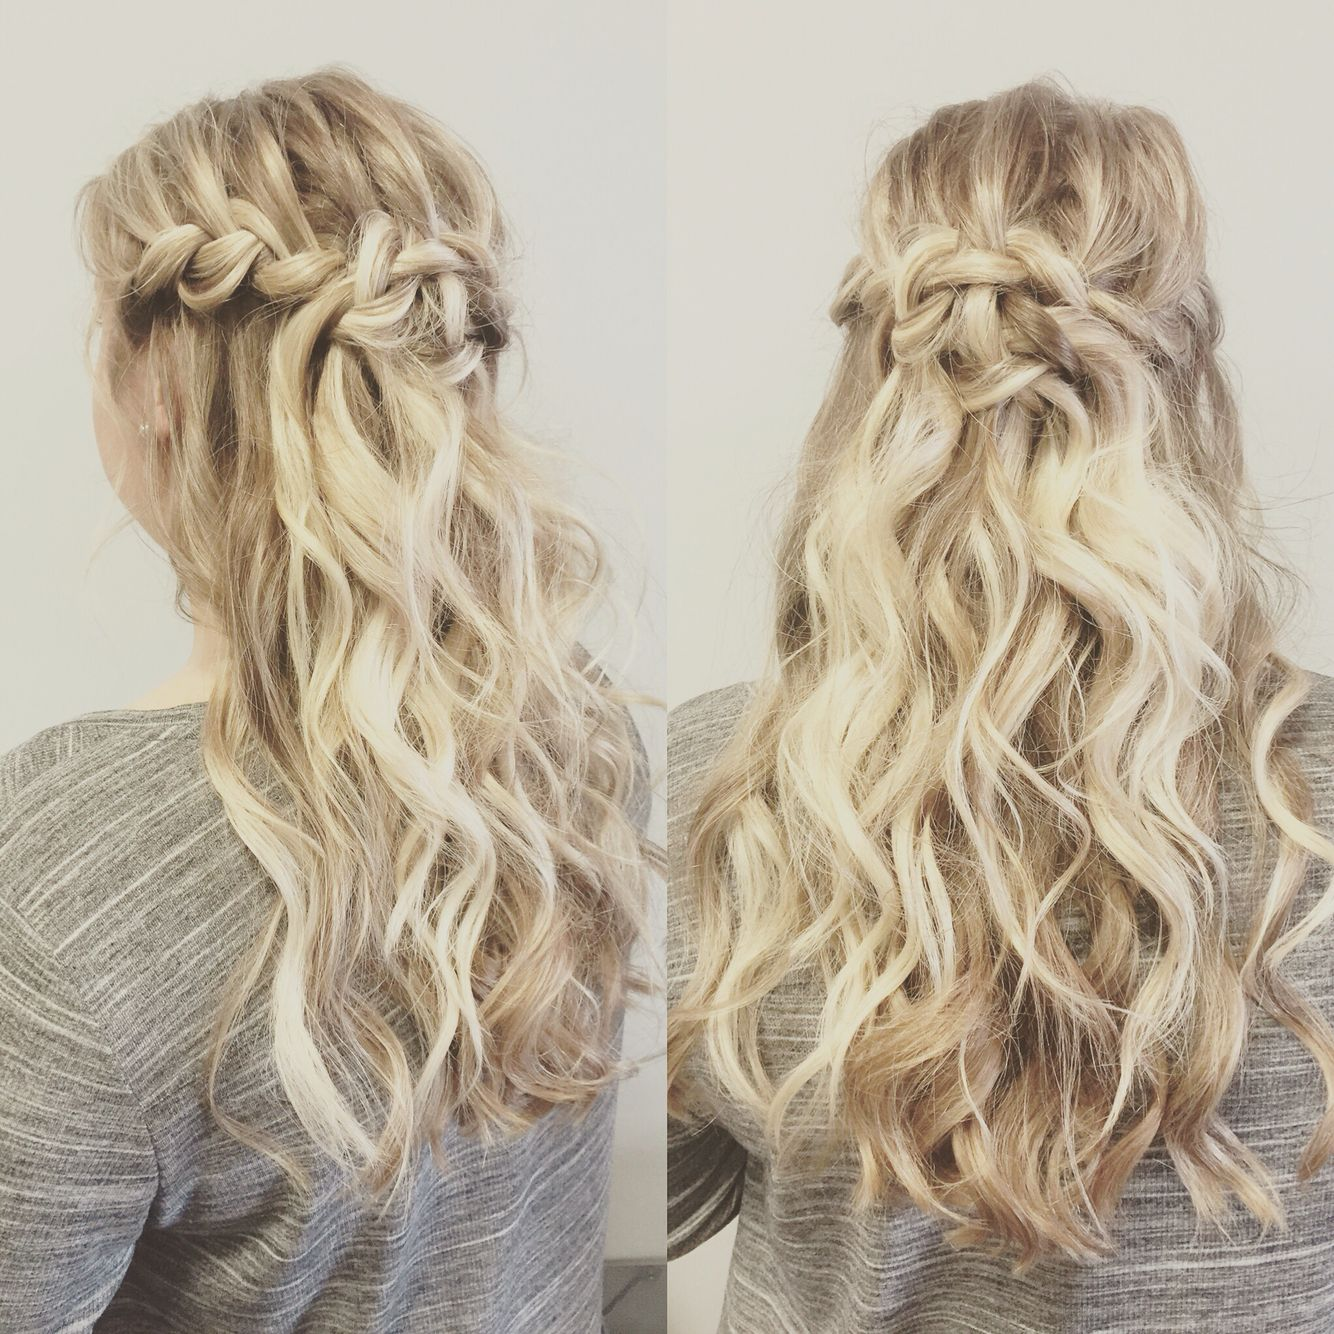 Maid of honor hair for my sister\'s wedding | Chopped | Pinterest ...